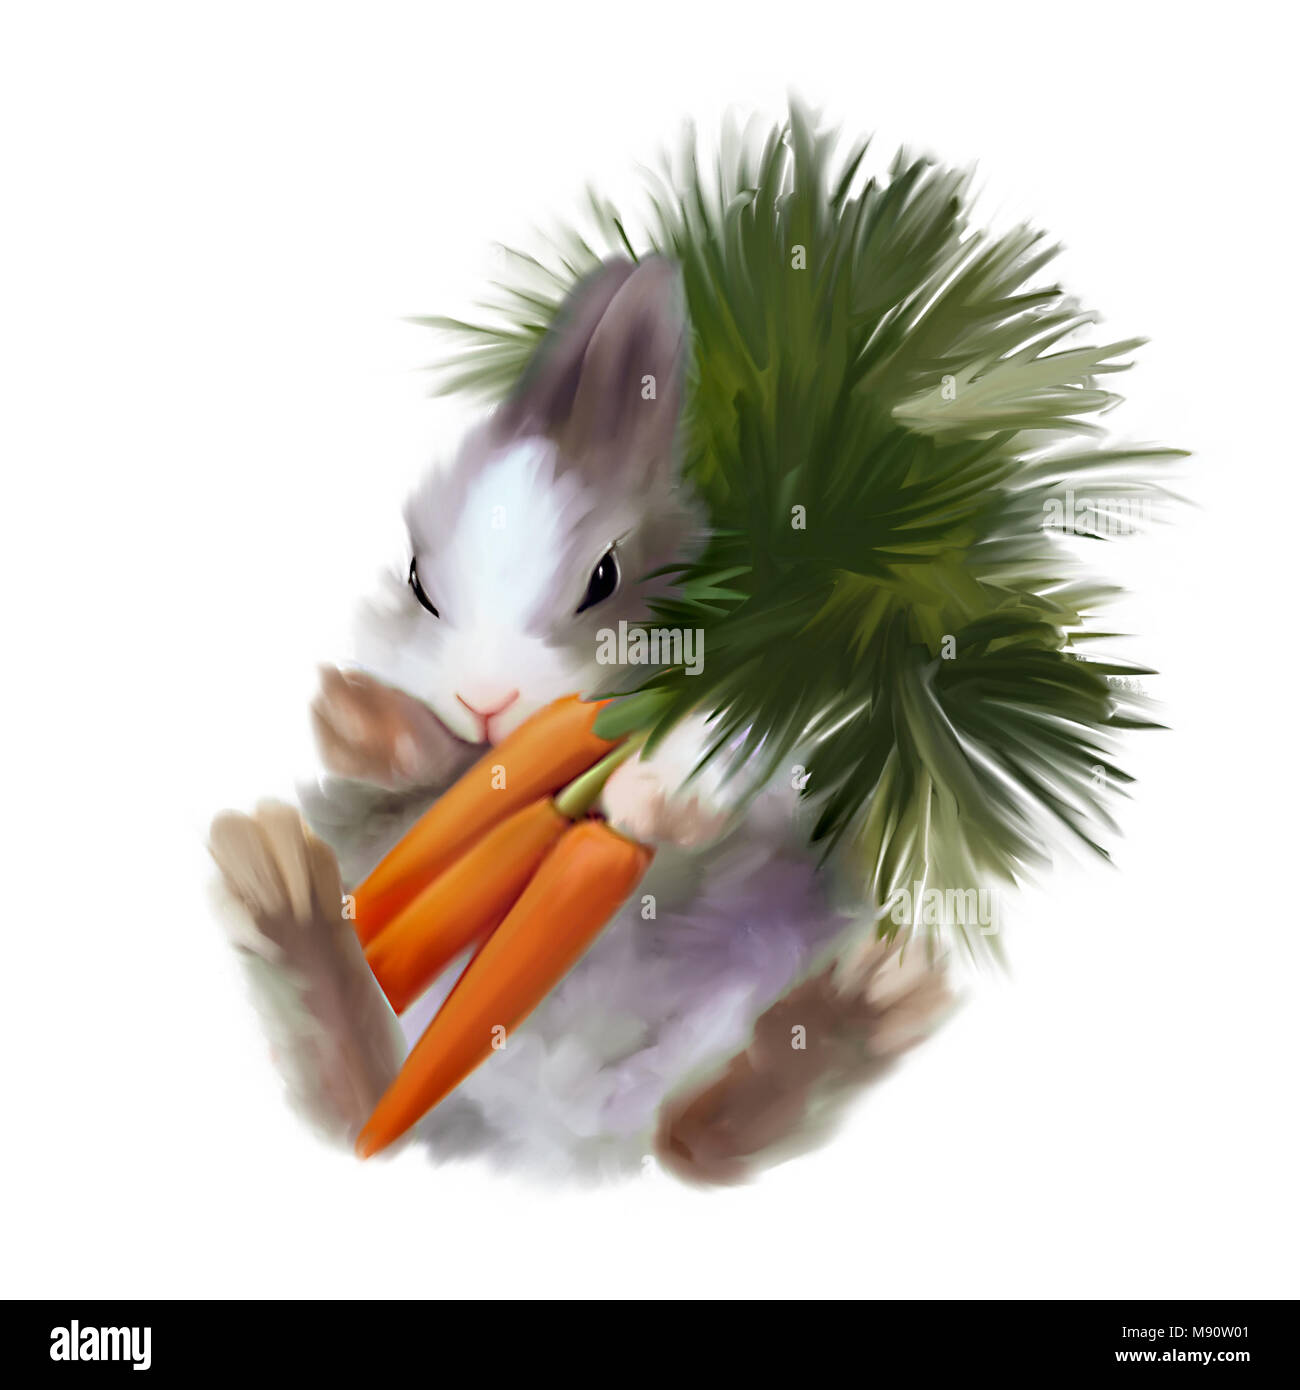 Fluffy bunny with bouquet of carrots. Cute illustration. - Stock Image